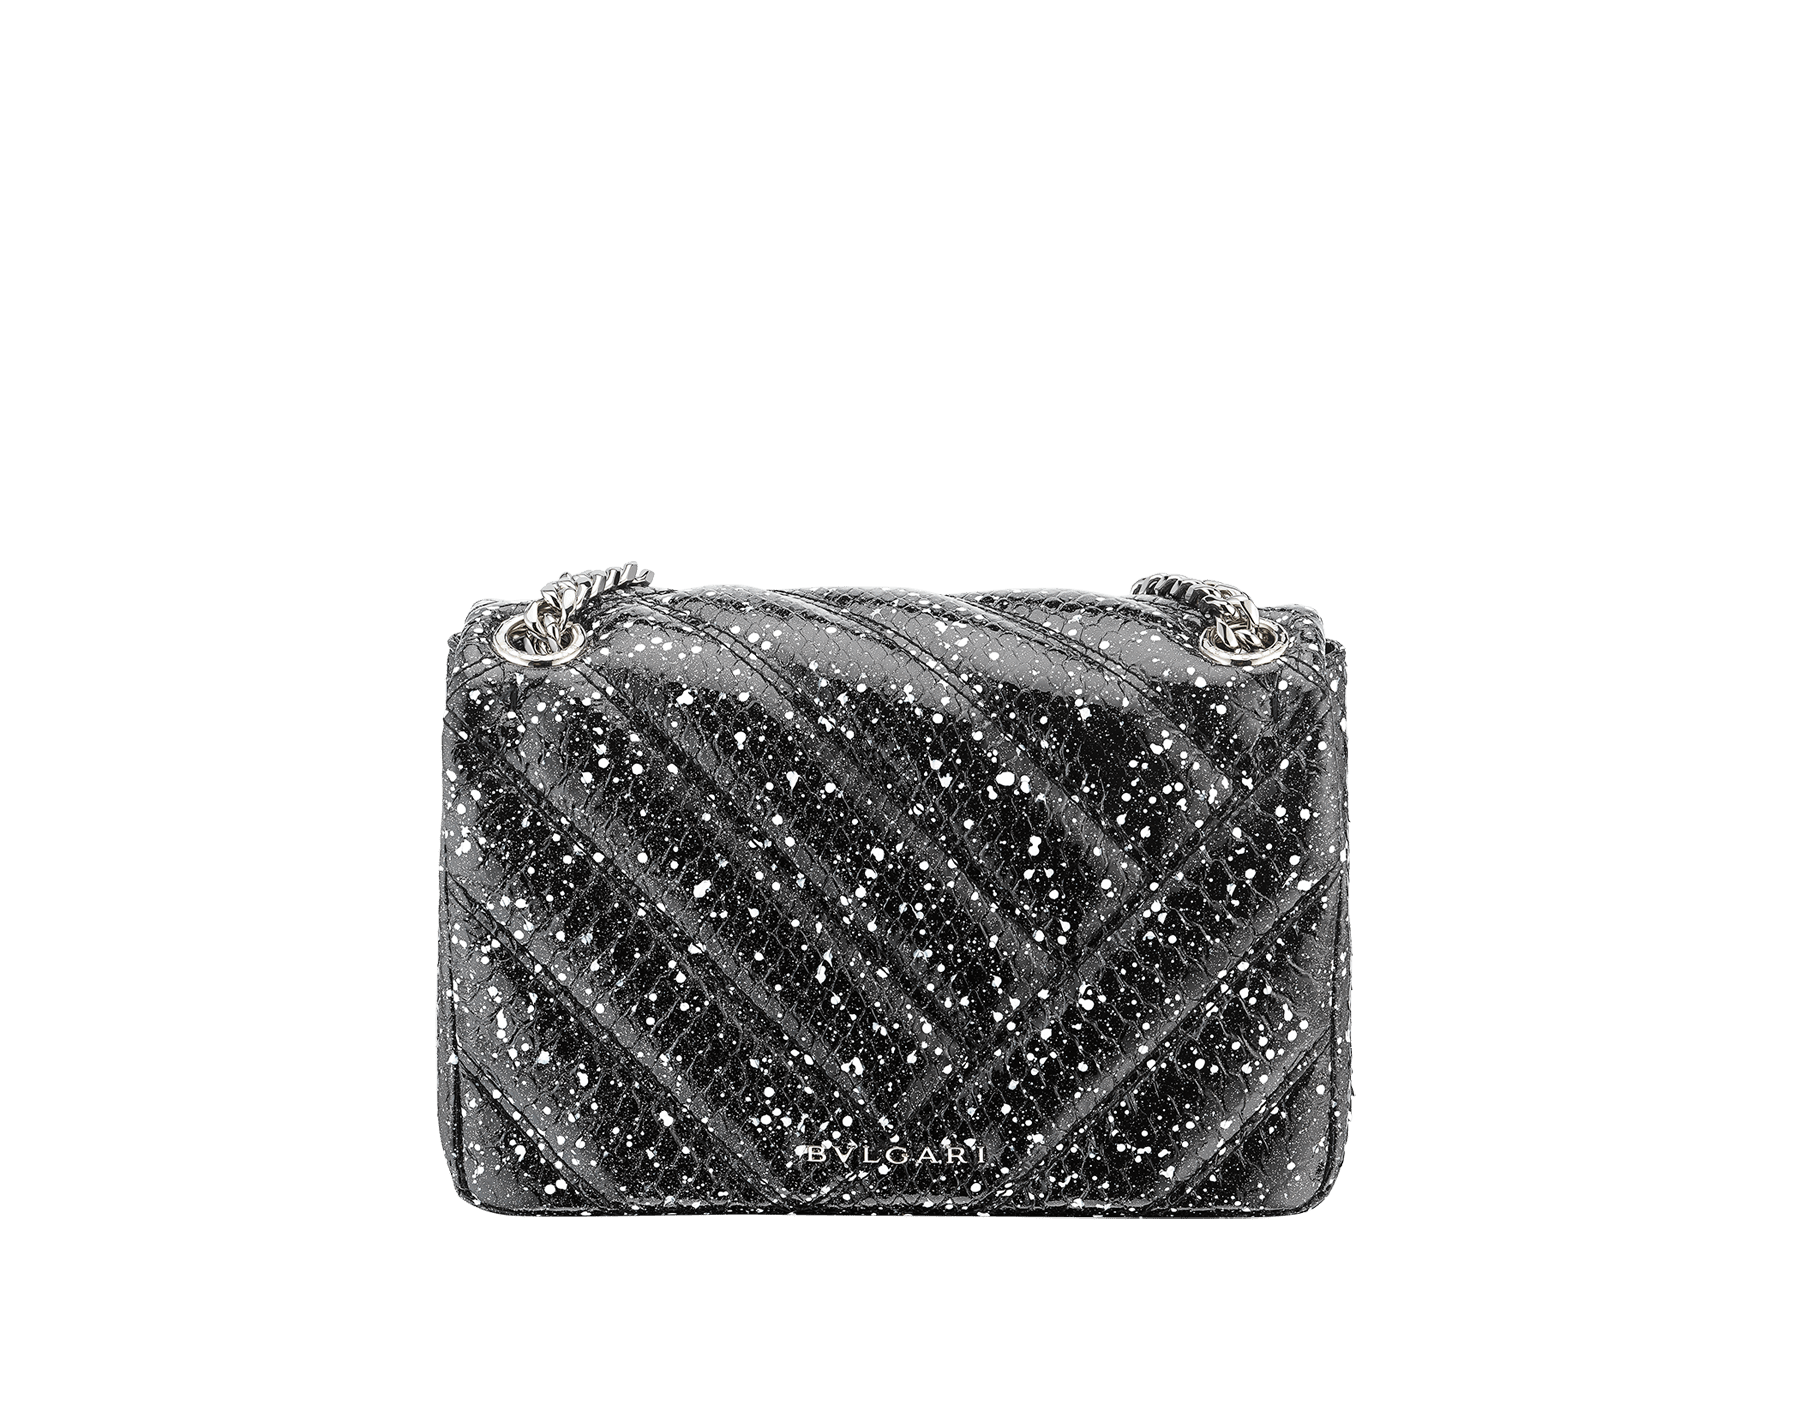 Serpenti Cabochon shoulder bag in soft matelassé black and white cosmic python skin with graphic motif. Snakehead closure in palladium plated brass decorated with matte black and white enamel, and black onyx eyes. 288621 image 3